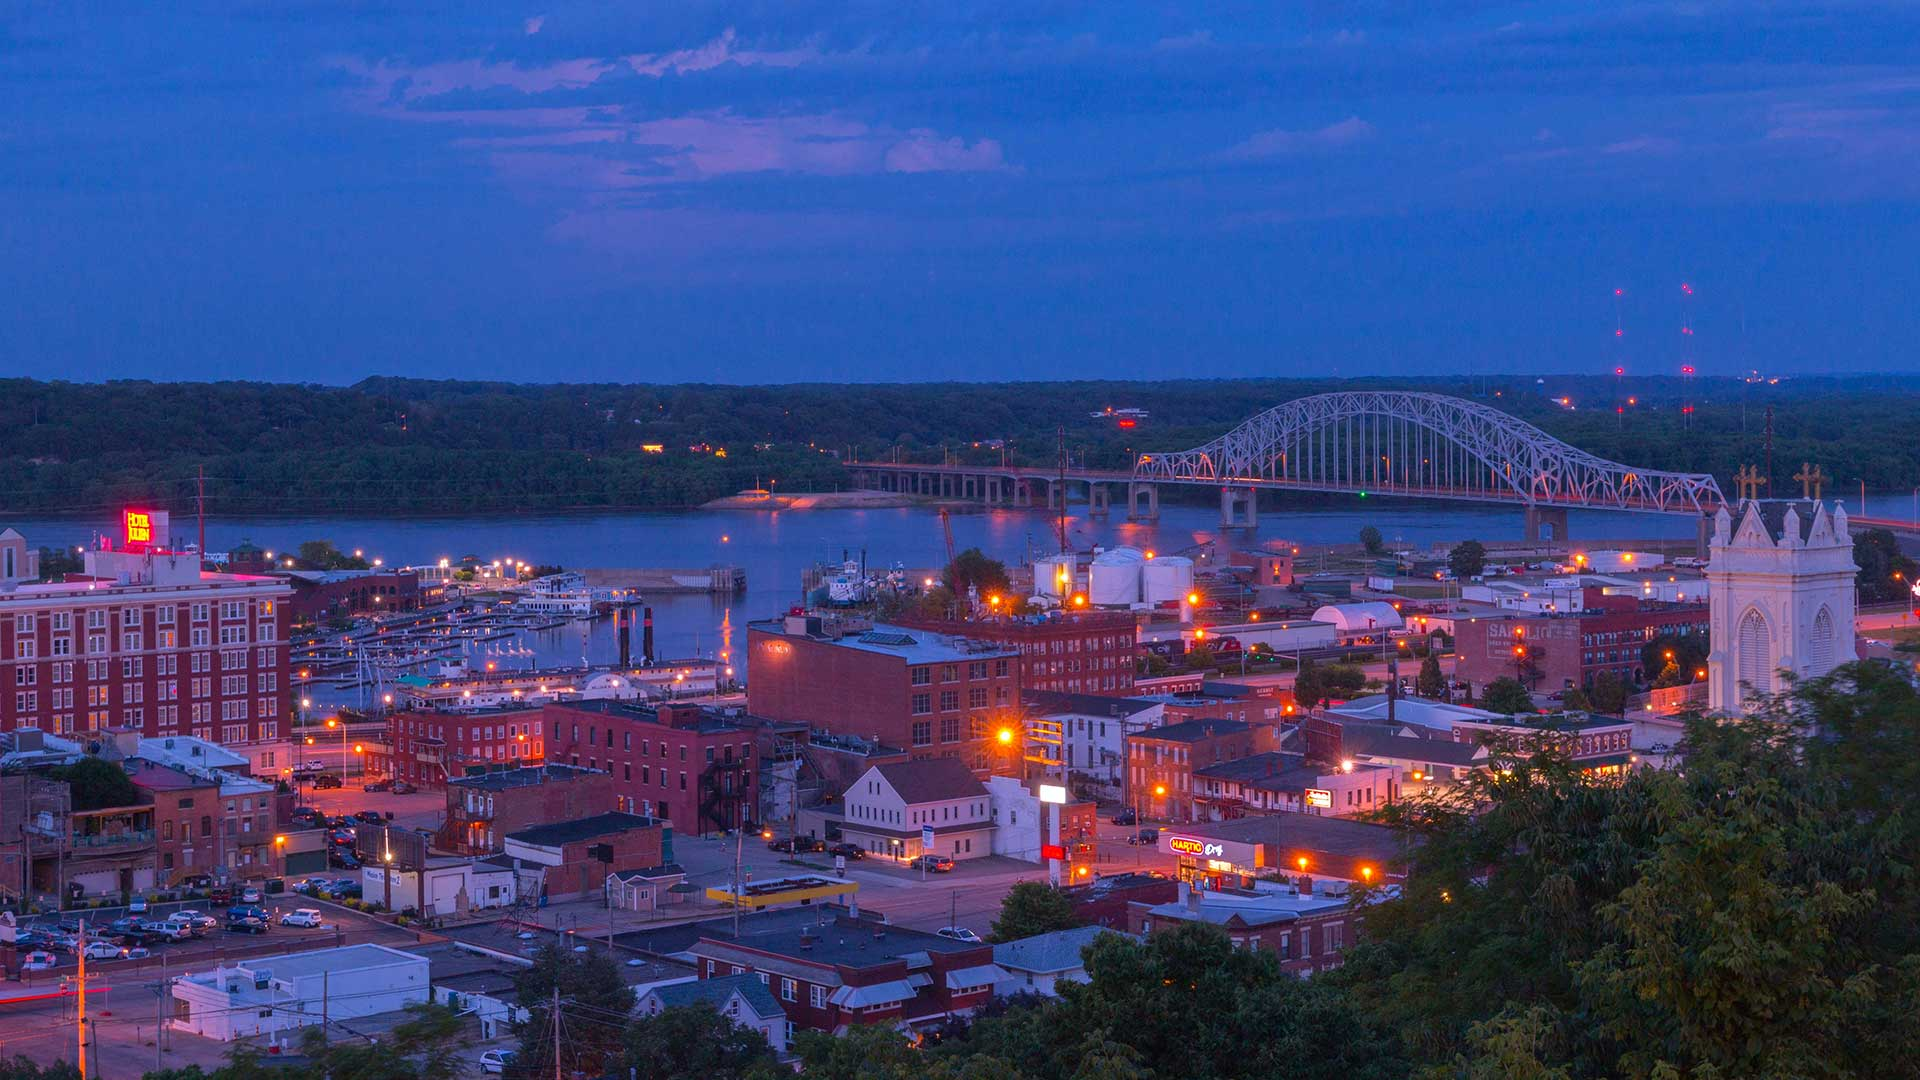 Panorama to illustrate dating in dubuque